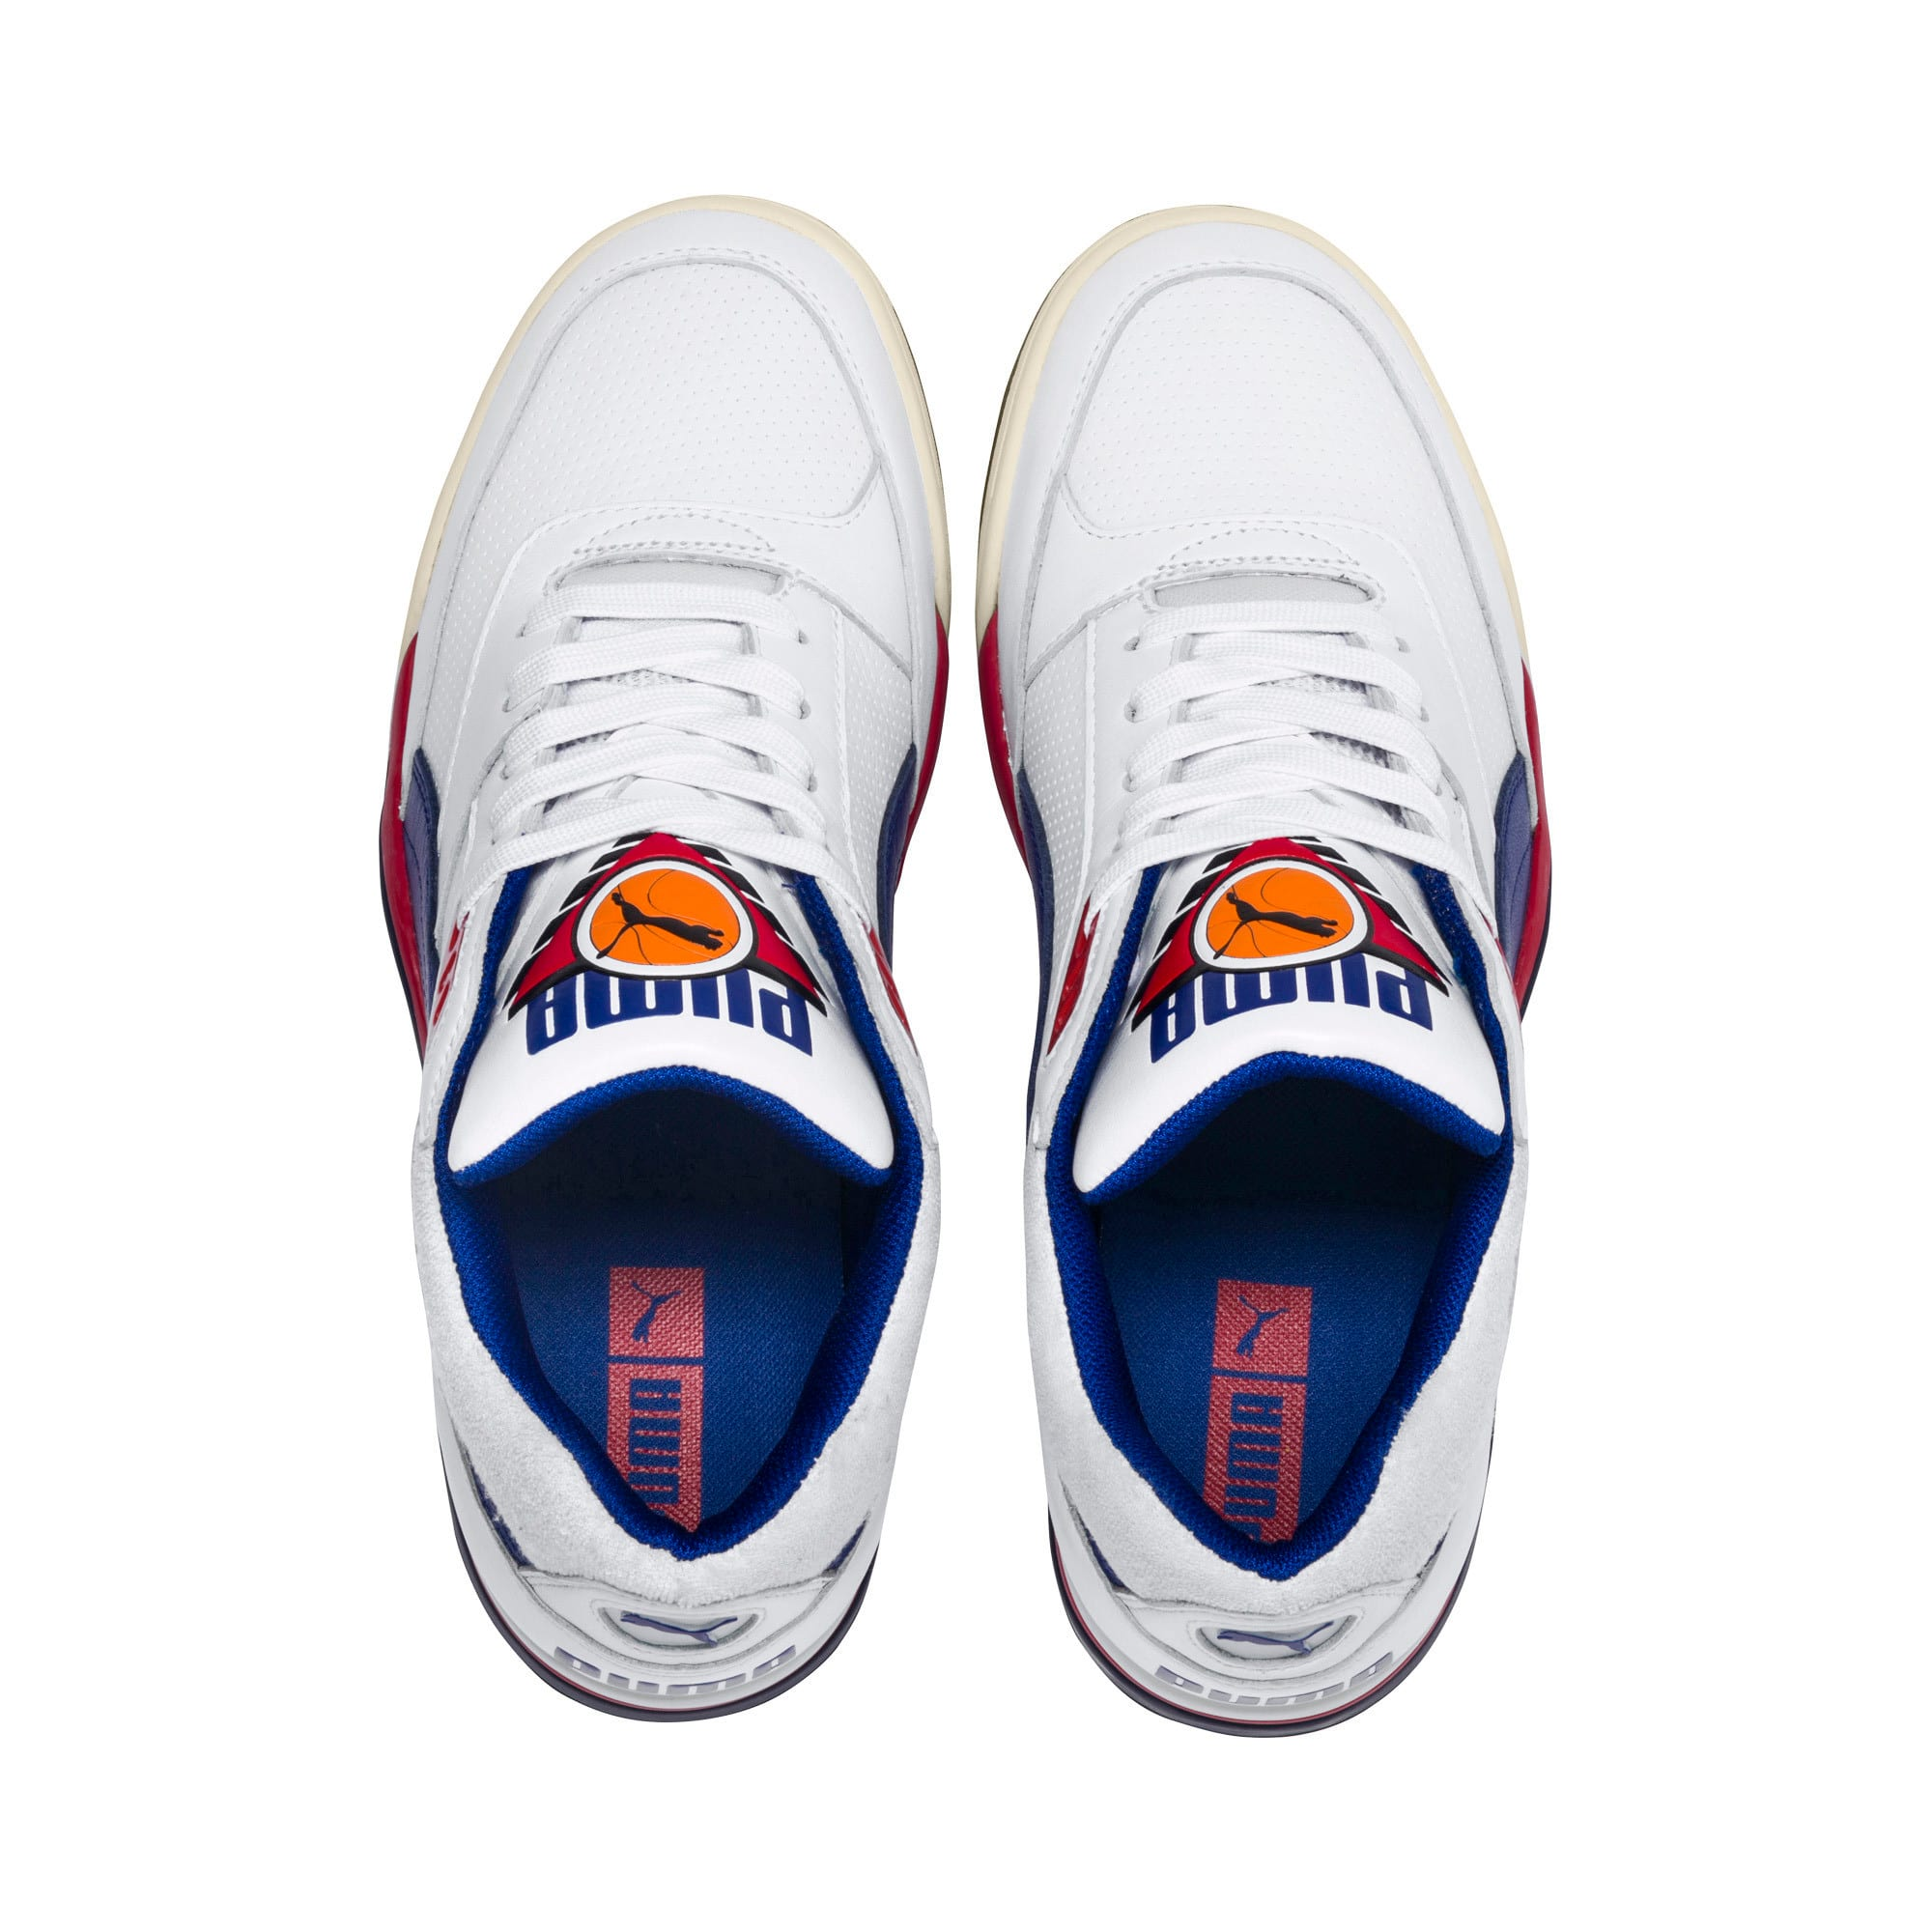 Thumbnail 6 of Palace Guard OG Trainers, Puma White-Surf The Web-Red, medium